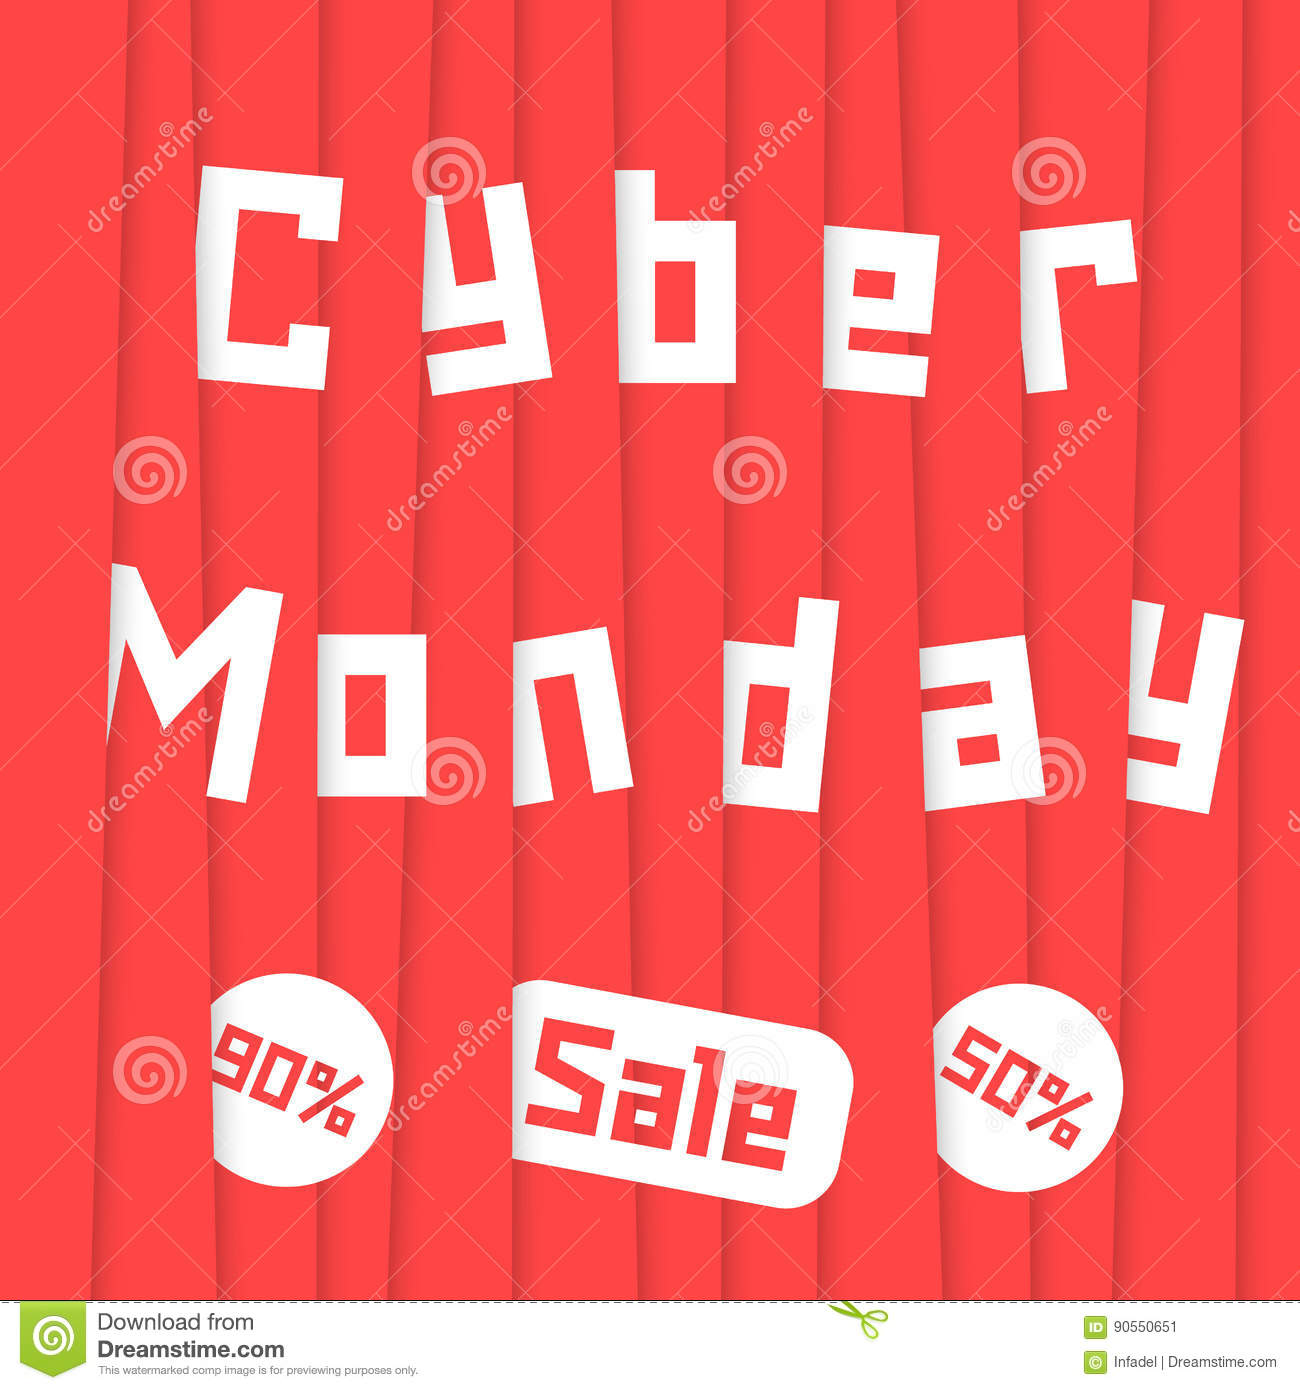 Look - Sales Shoppingcoupons black fridaycyber monday edition video